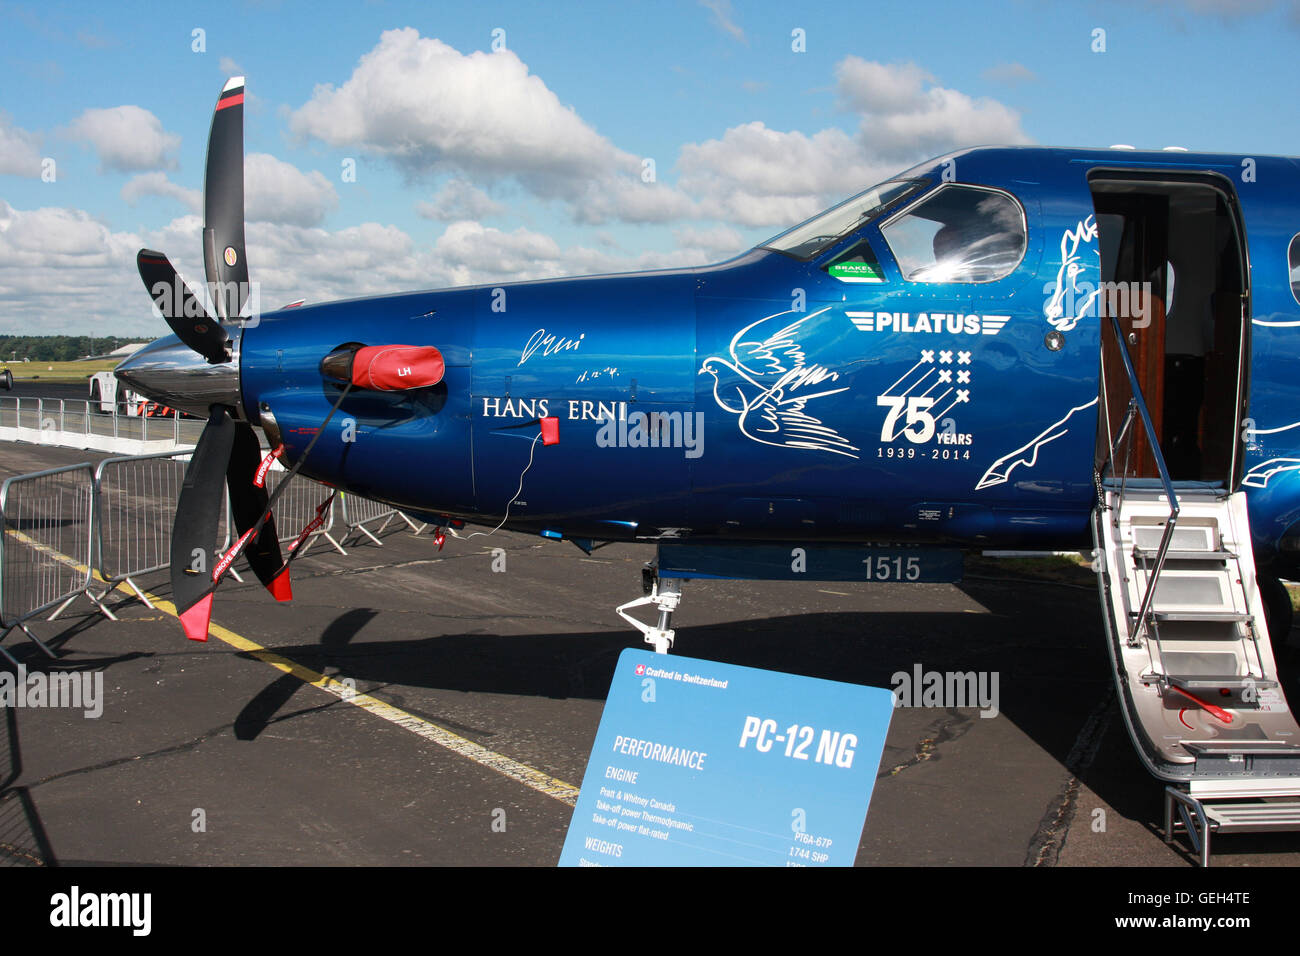 pilatus 75th anniversary PC 12 - Stock Image